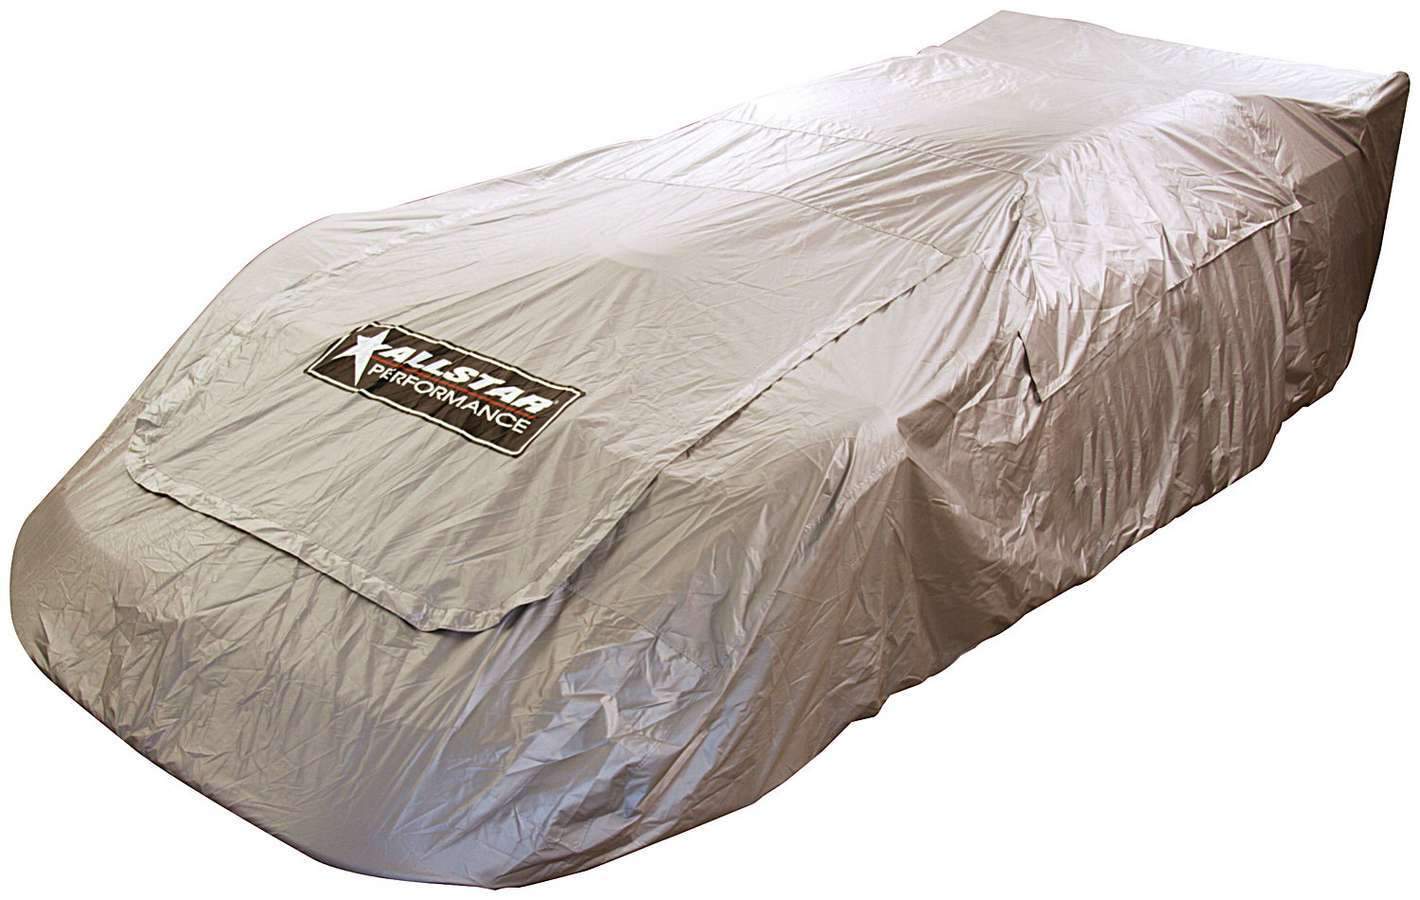 Allstar Performance Car Cover Template ABC and Street Stock